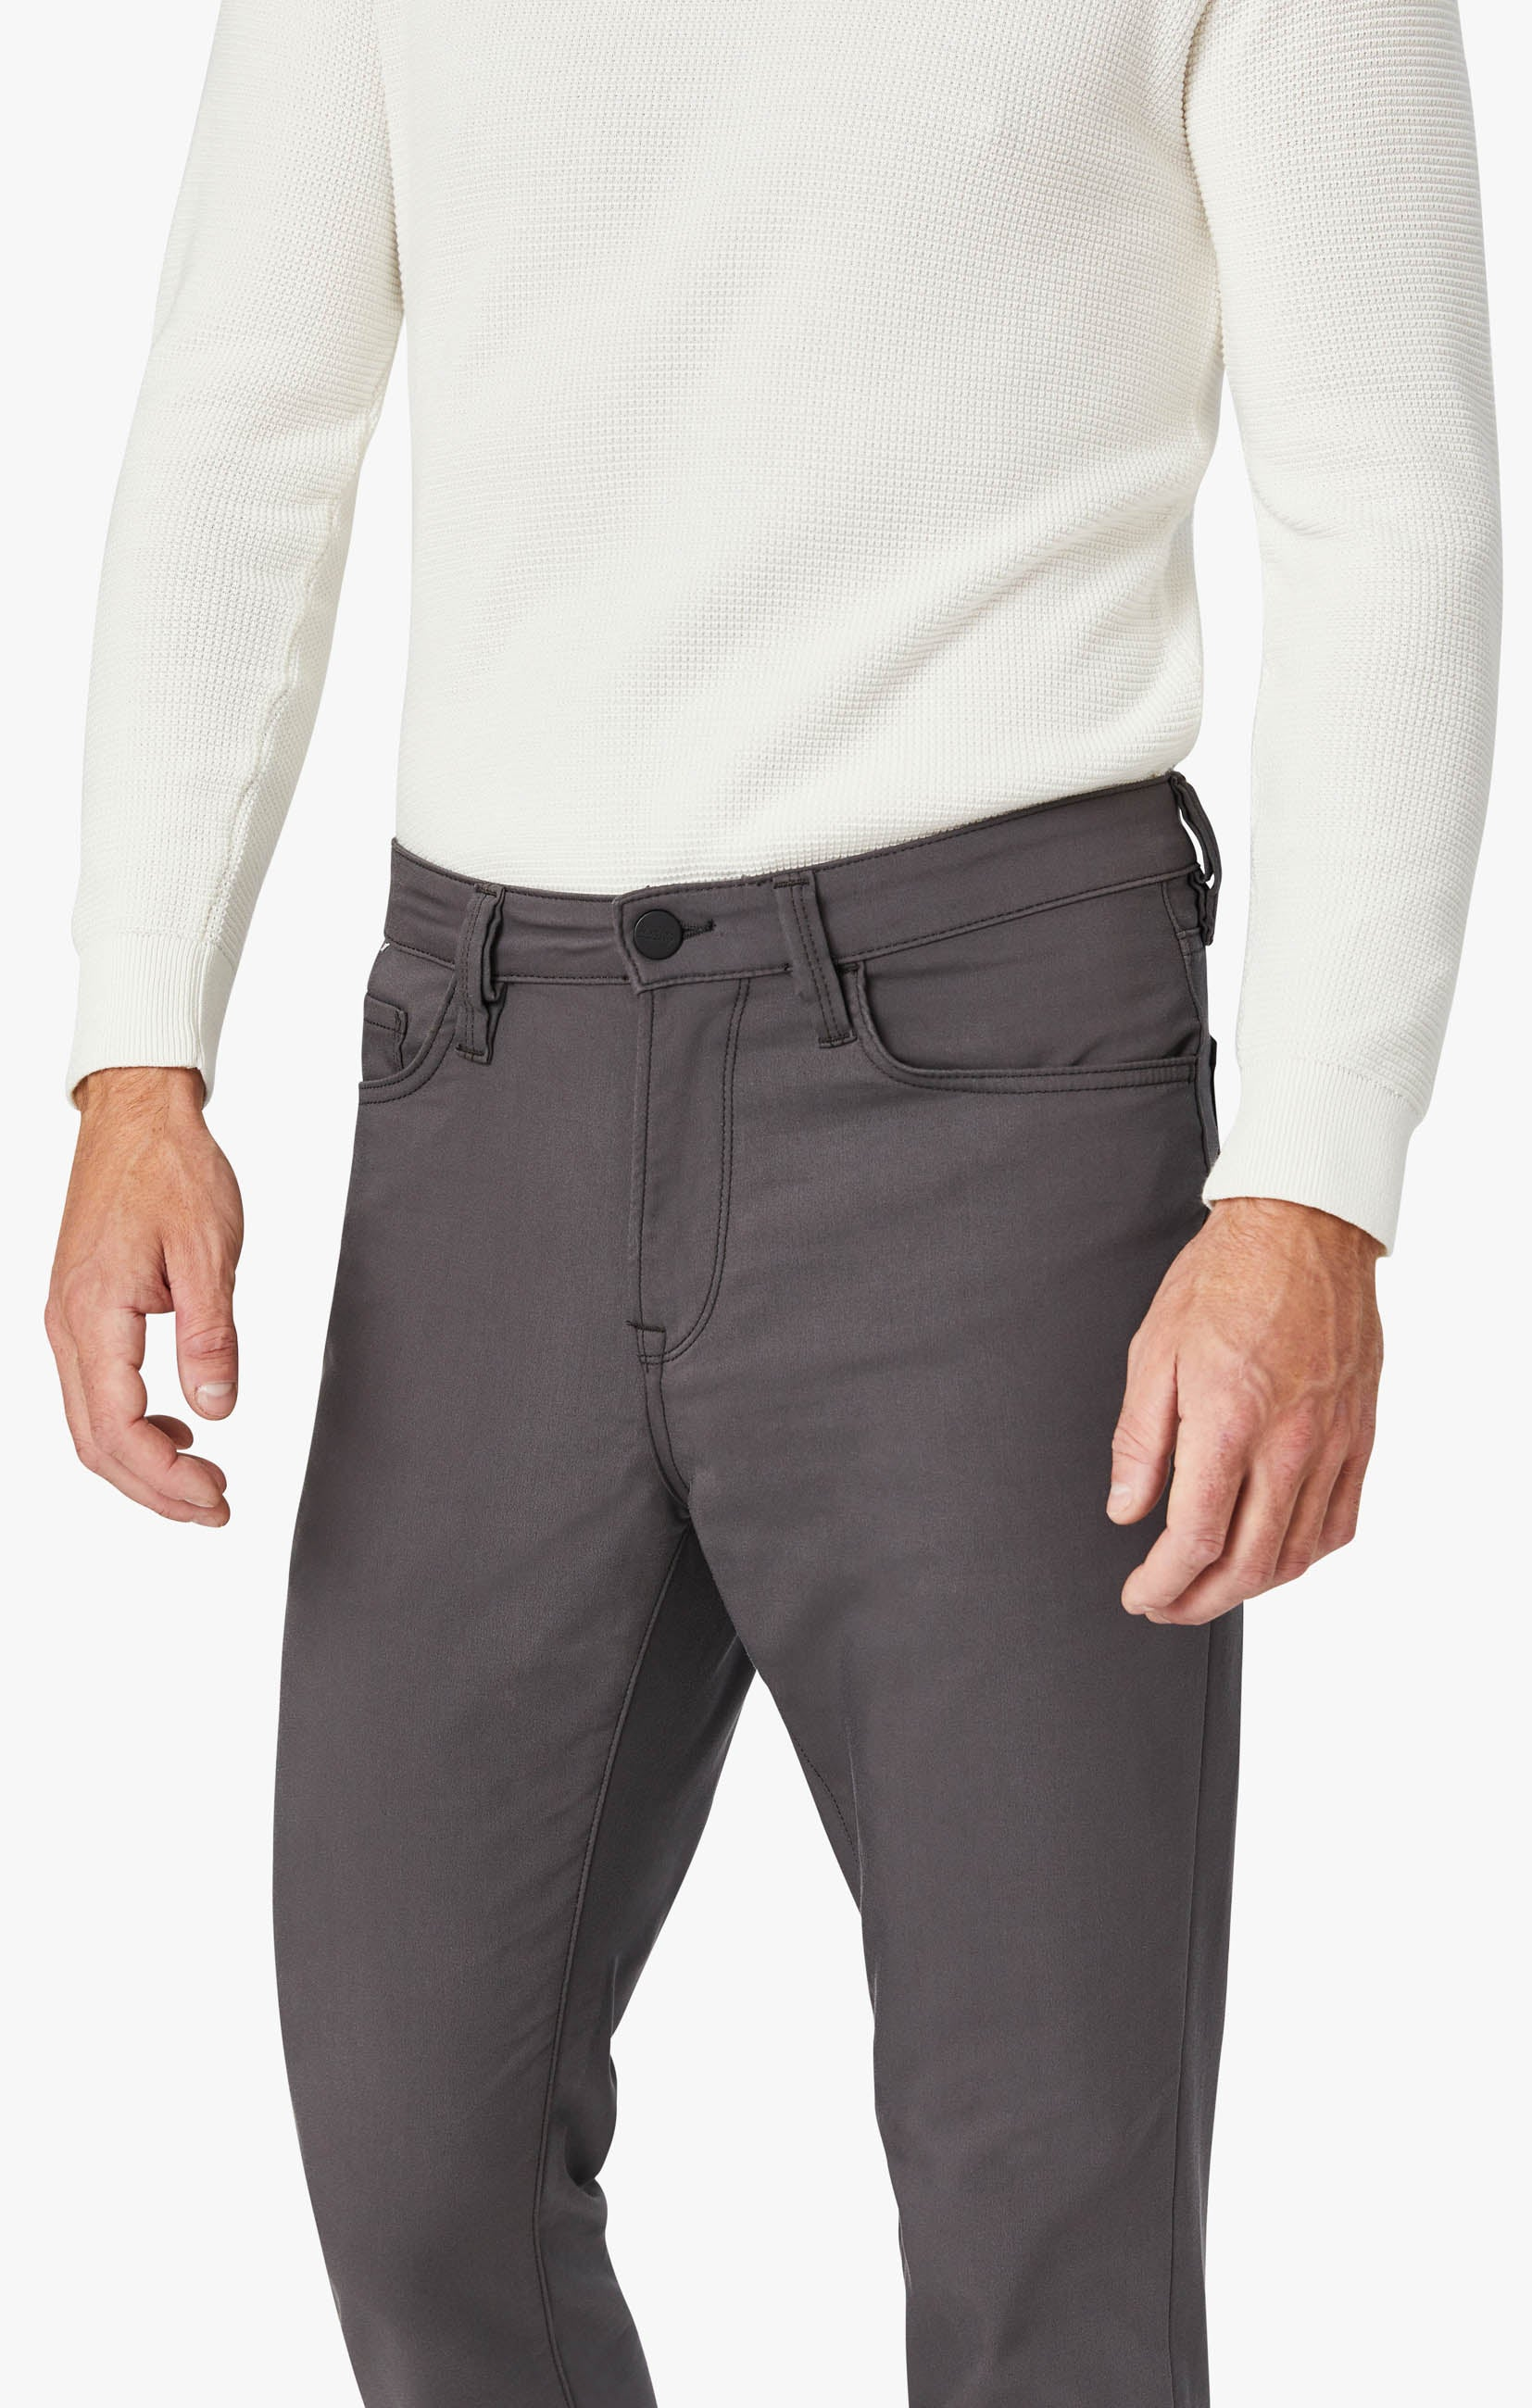 Charisma Relaxed Straight Commuter Pants In Graphite Image 5